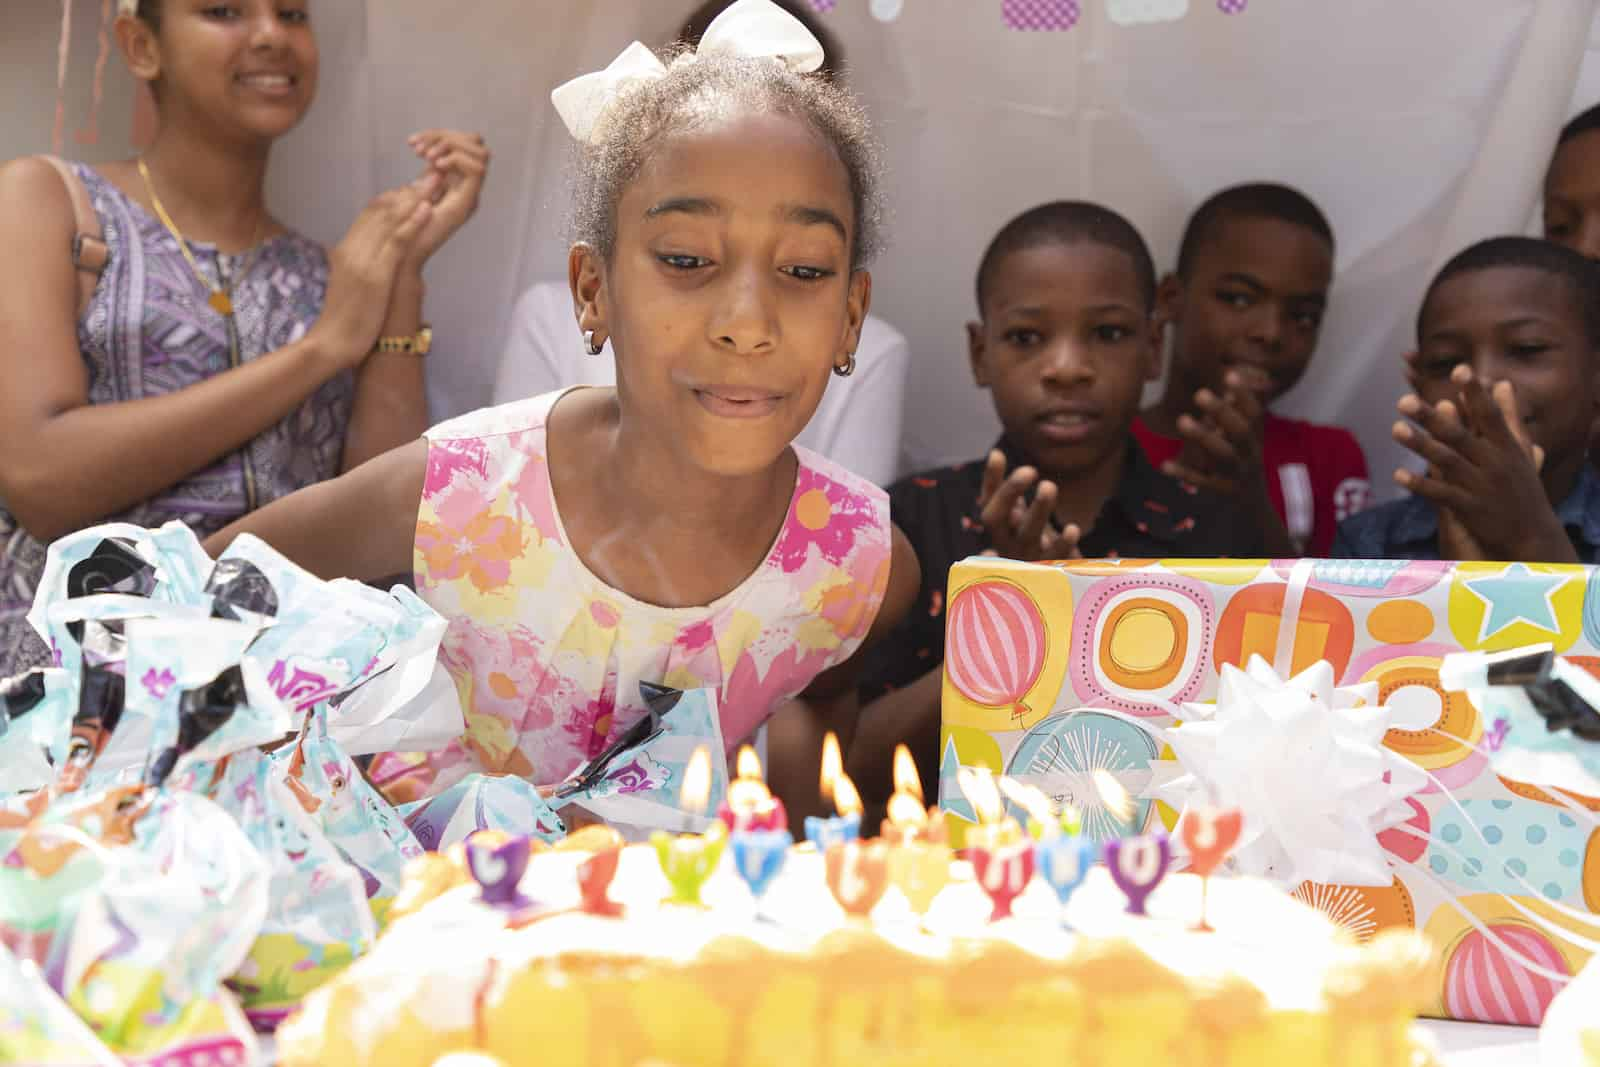 A girl leans over a birthday cake, blowing out the candles.